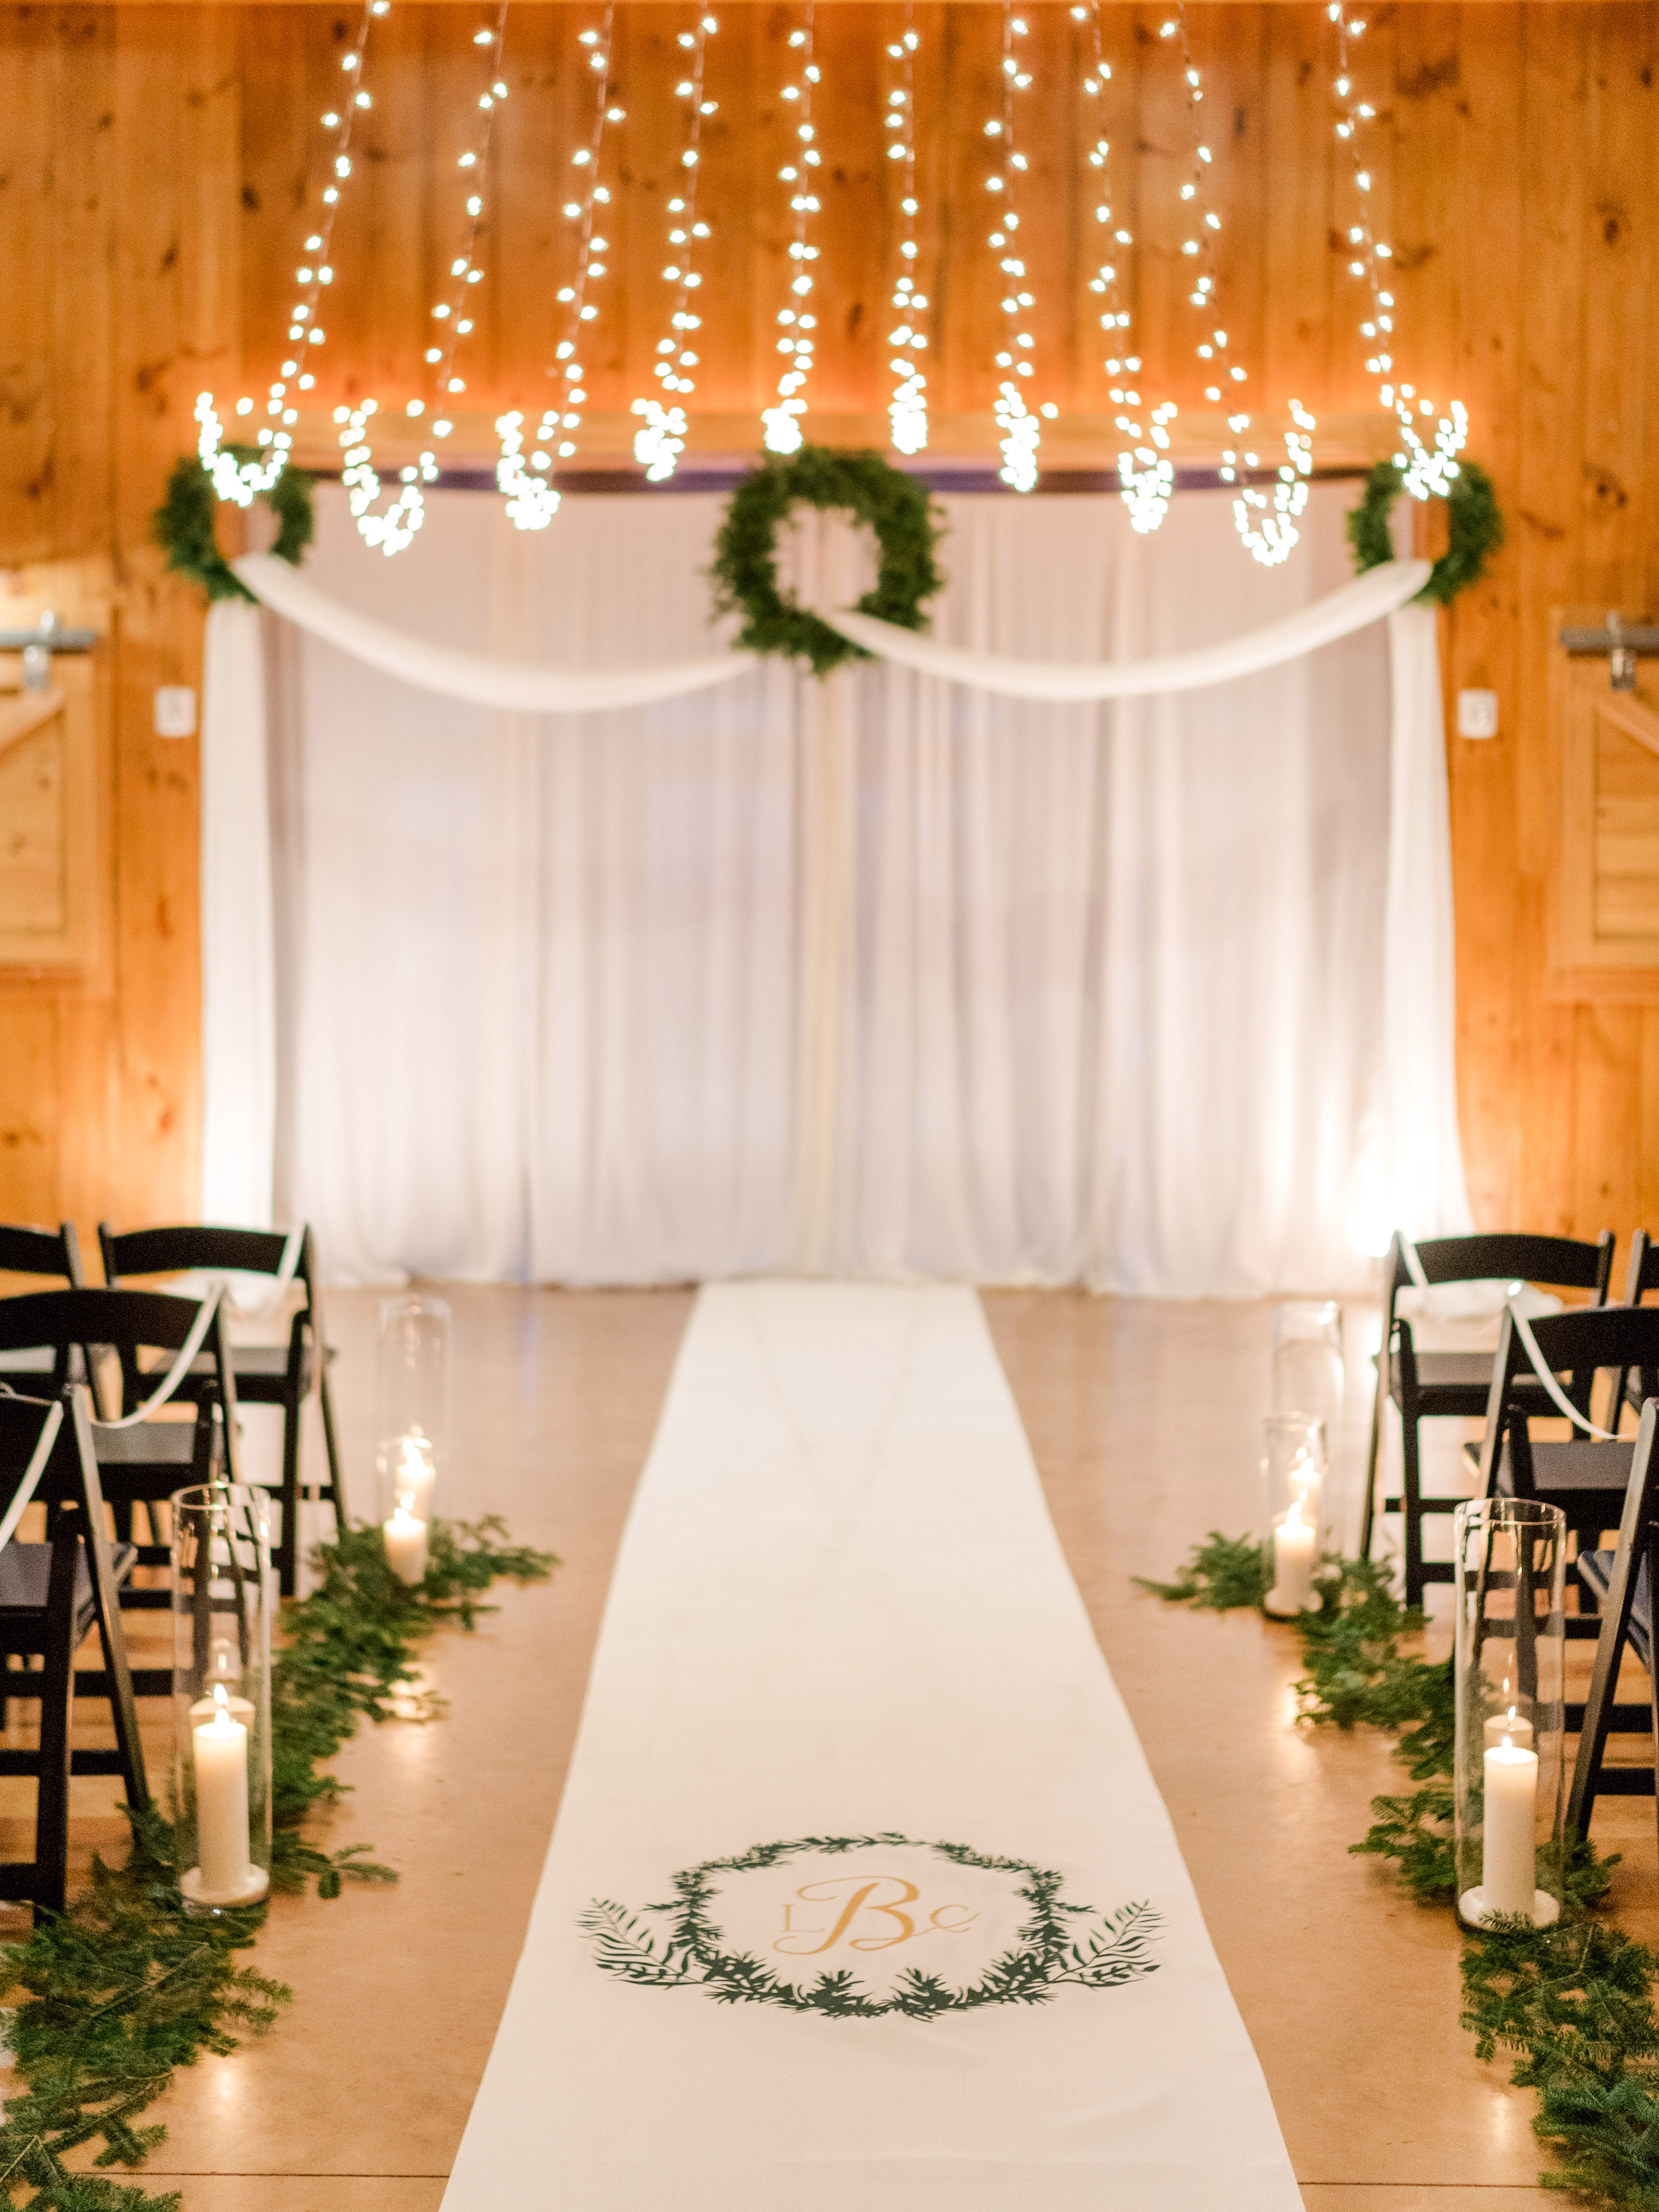 lauren christian christmas wedding ceremony aisle monogrammed runner lights